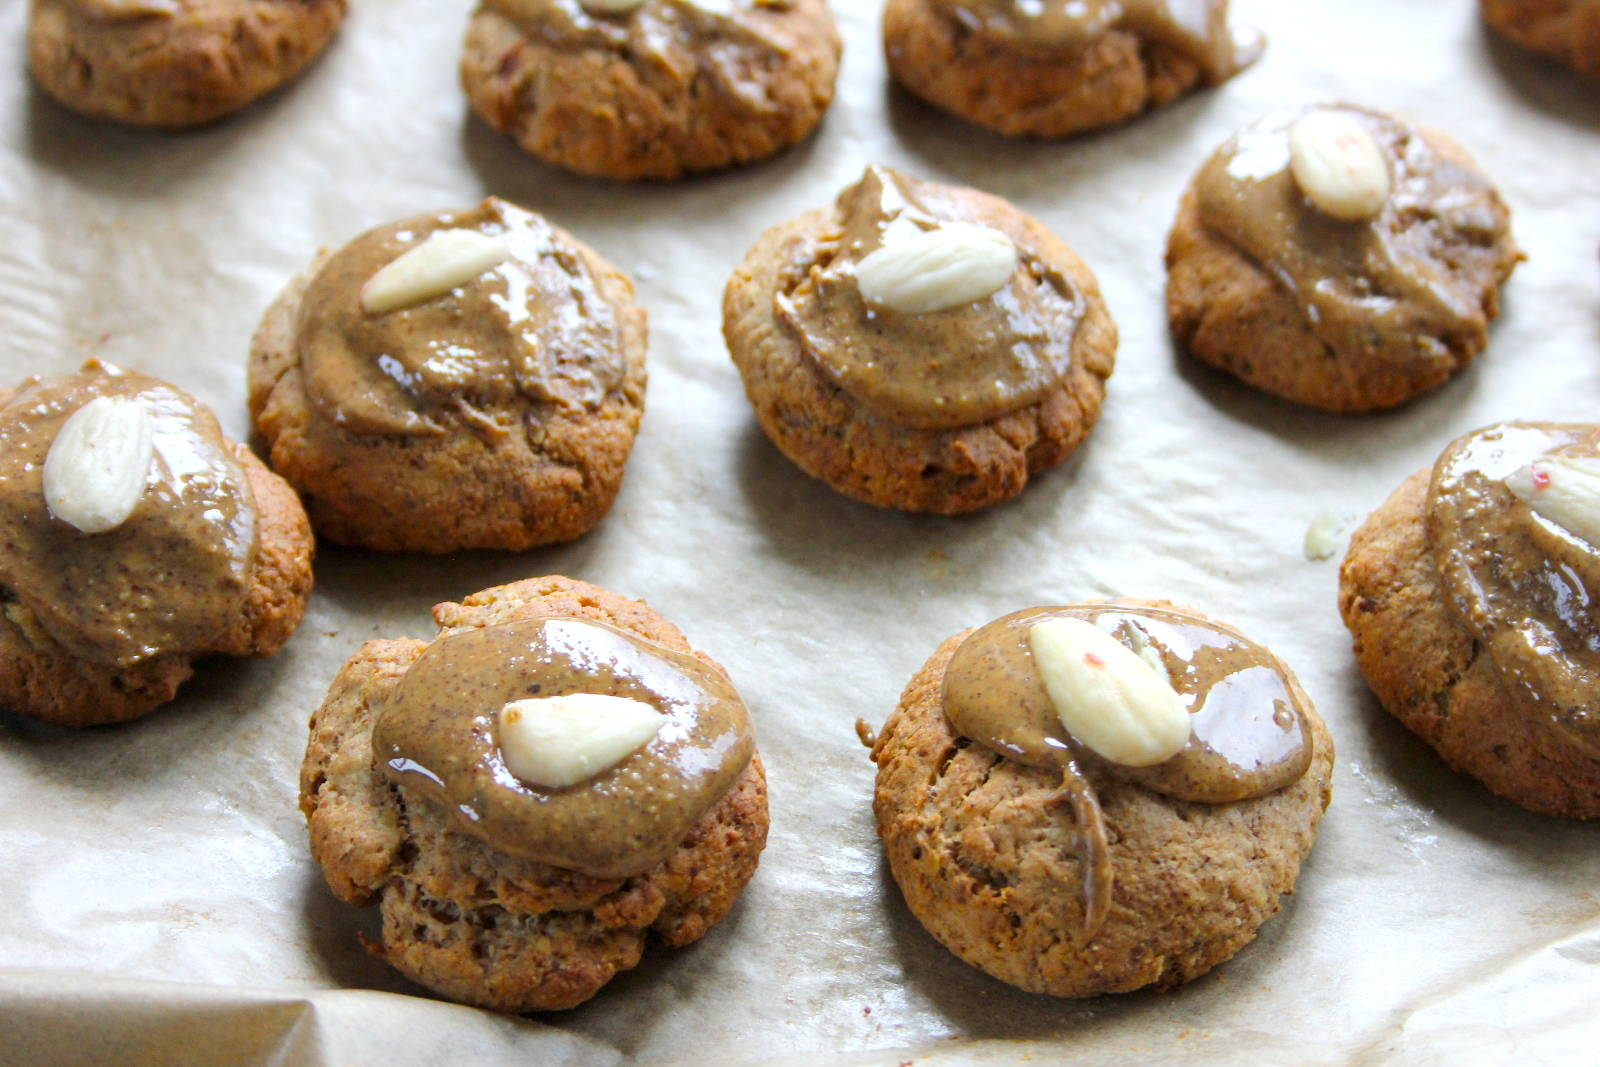 Bake These Treats for Homemade Cookies Day